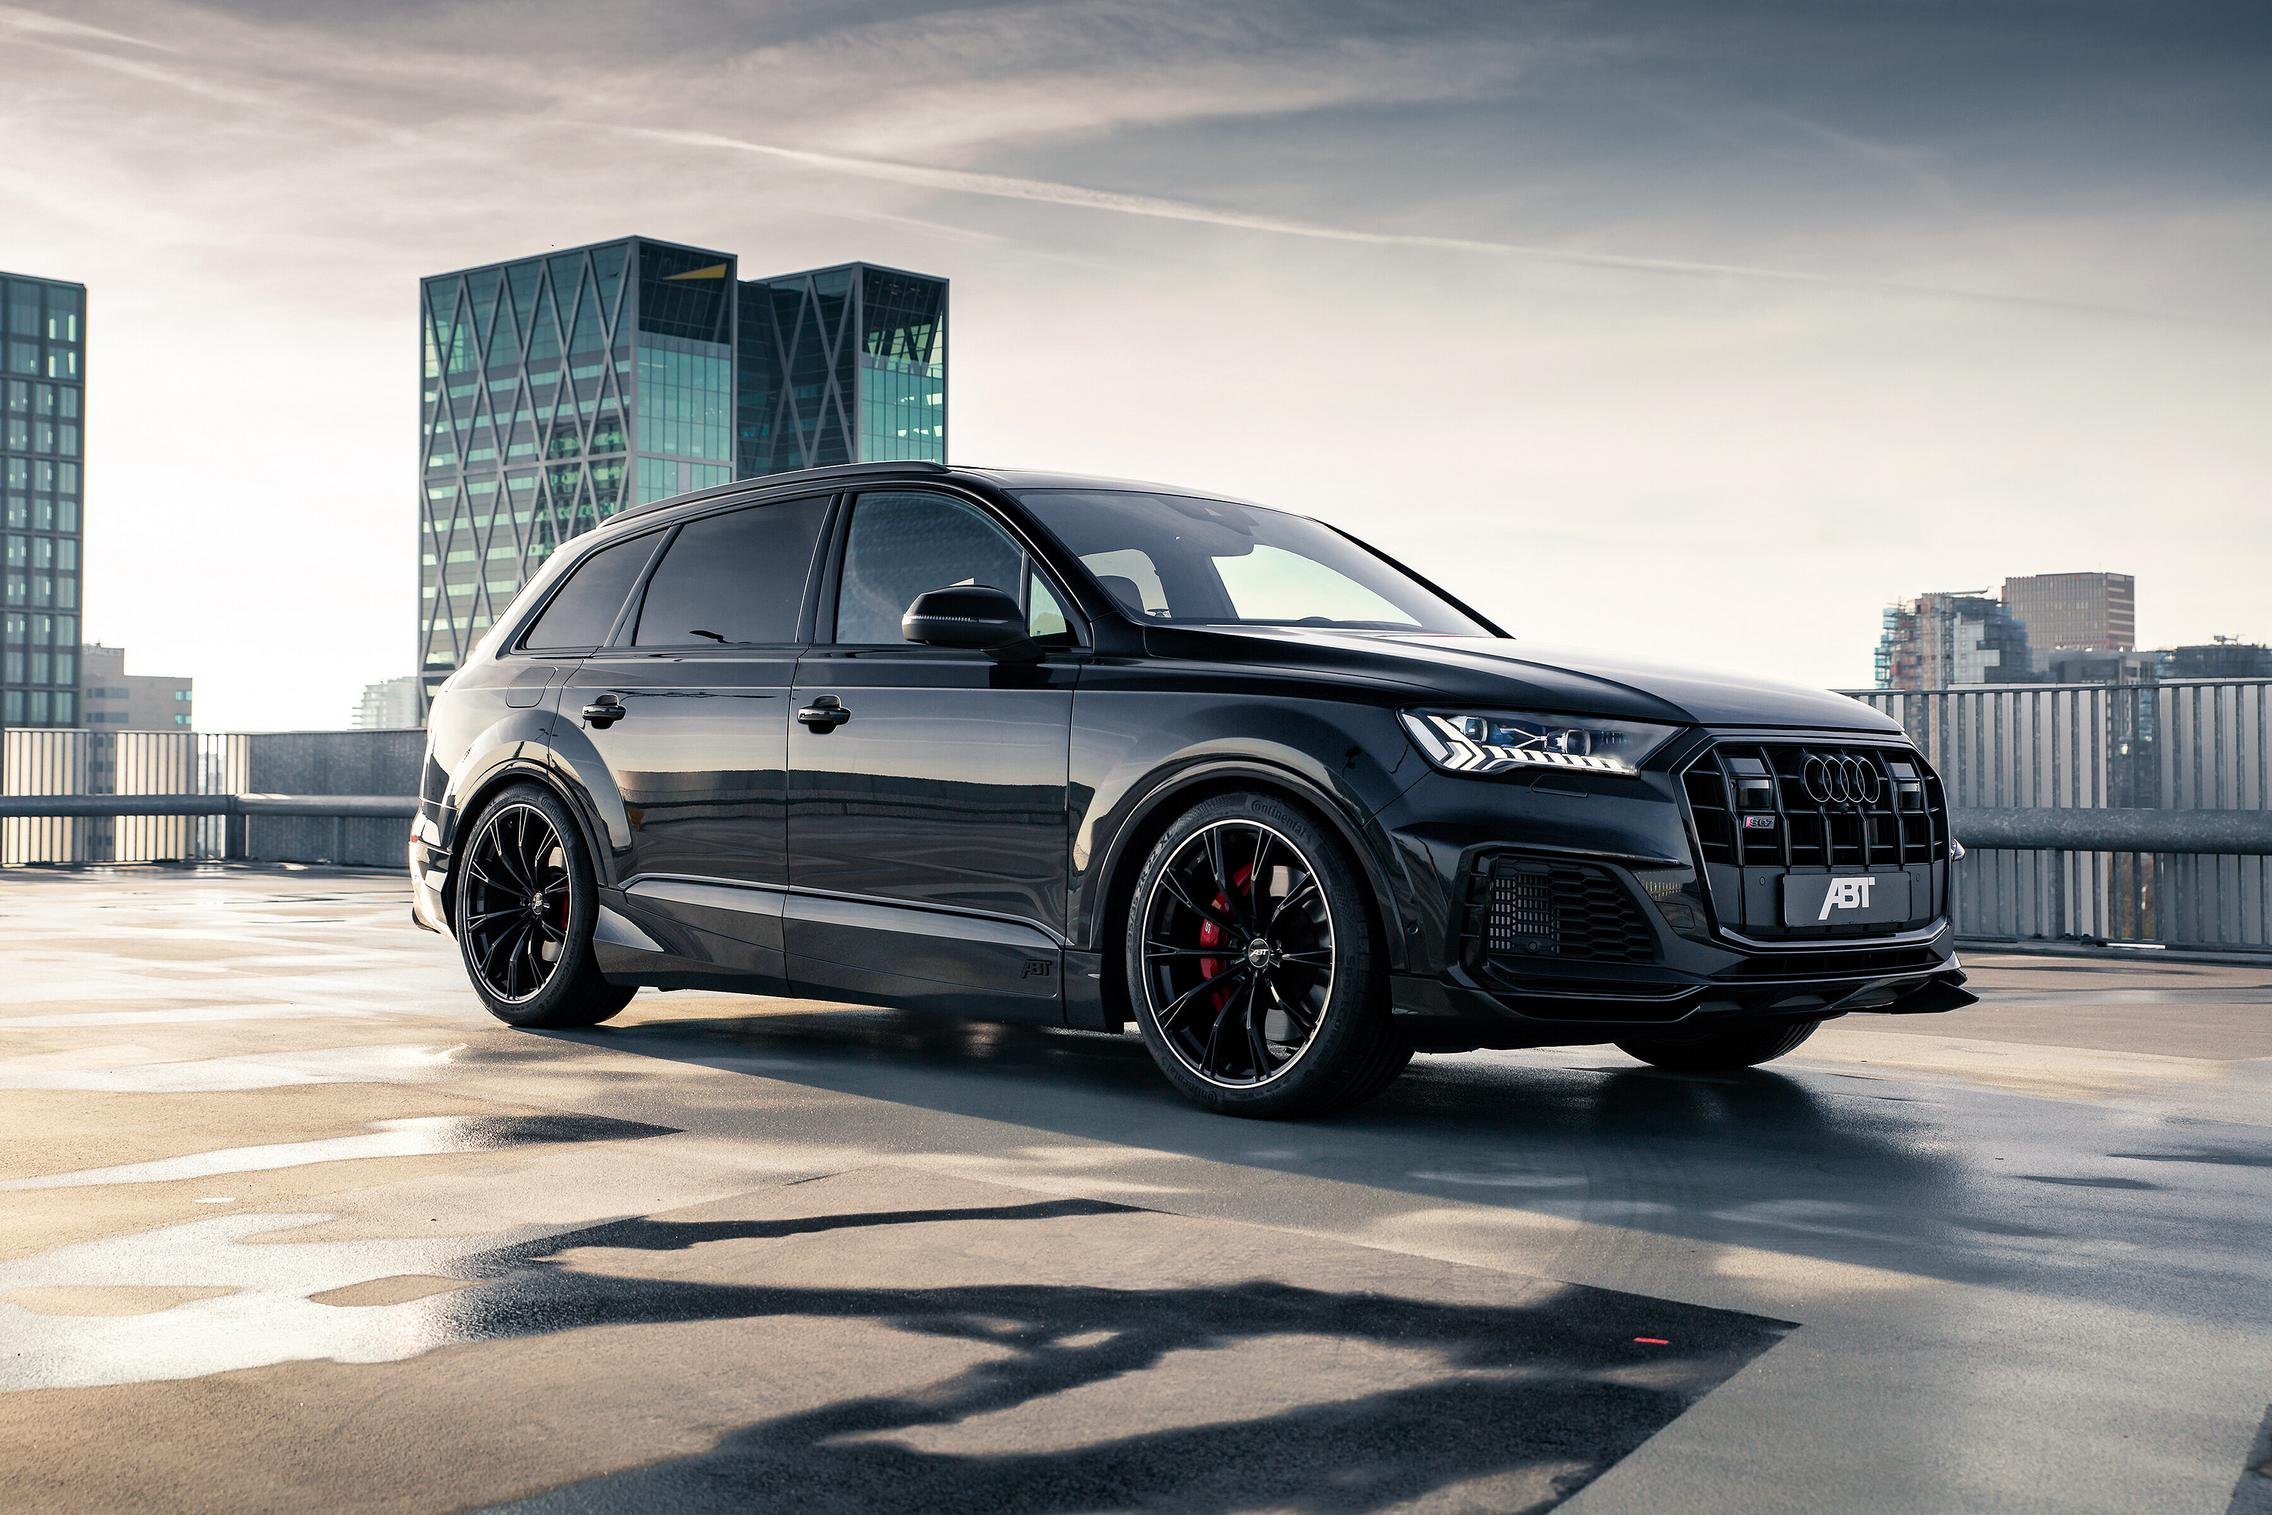 Audi-SQ7-ABT-wide-bodykit-1